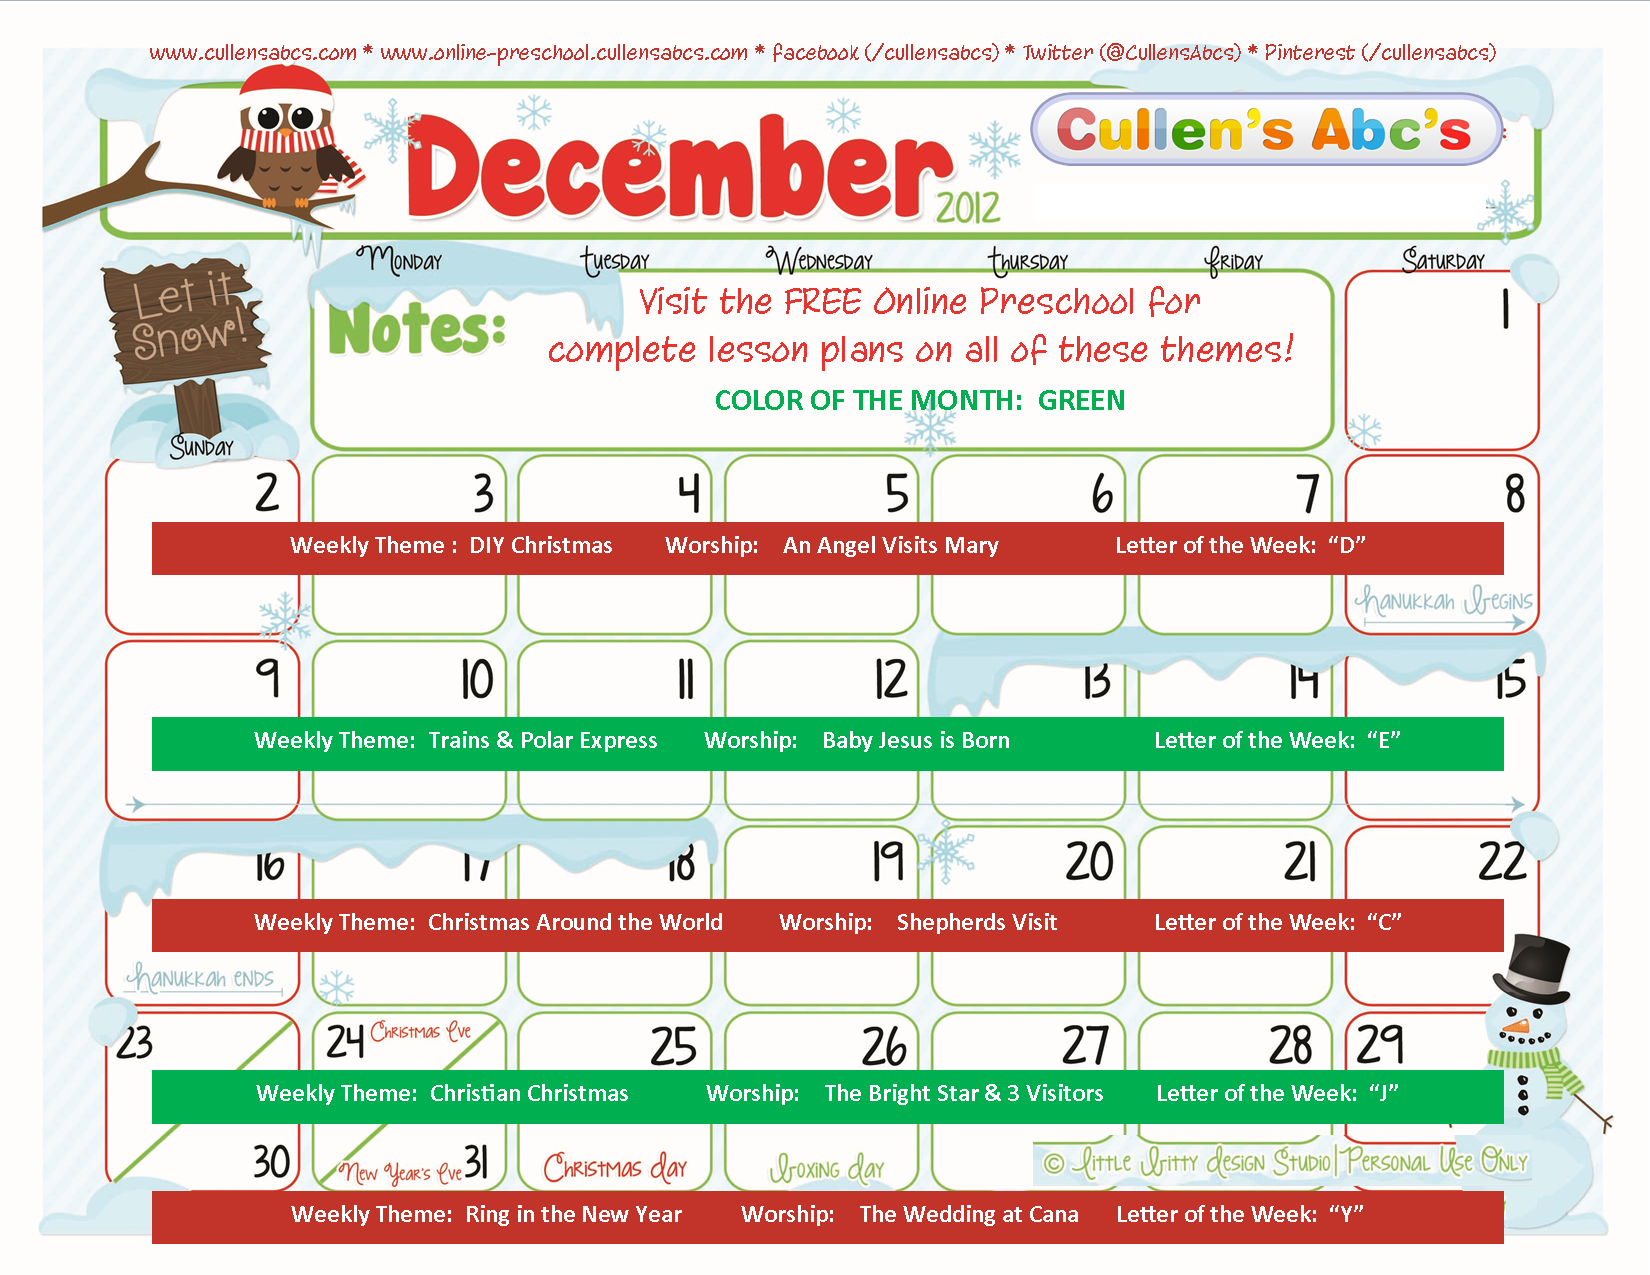 Preschool Xmas Calendar Ideas : Preschool calendars online and children s